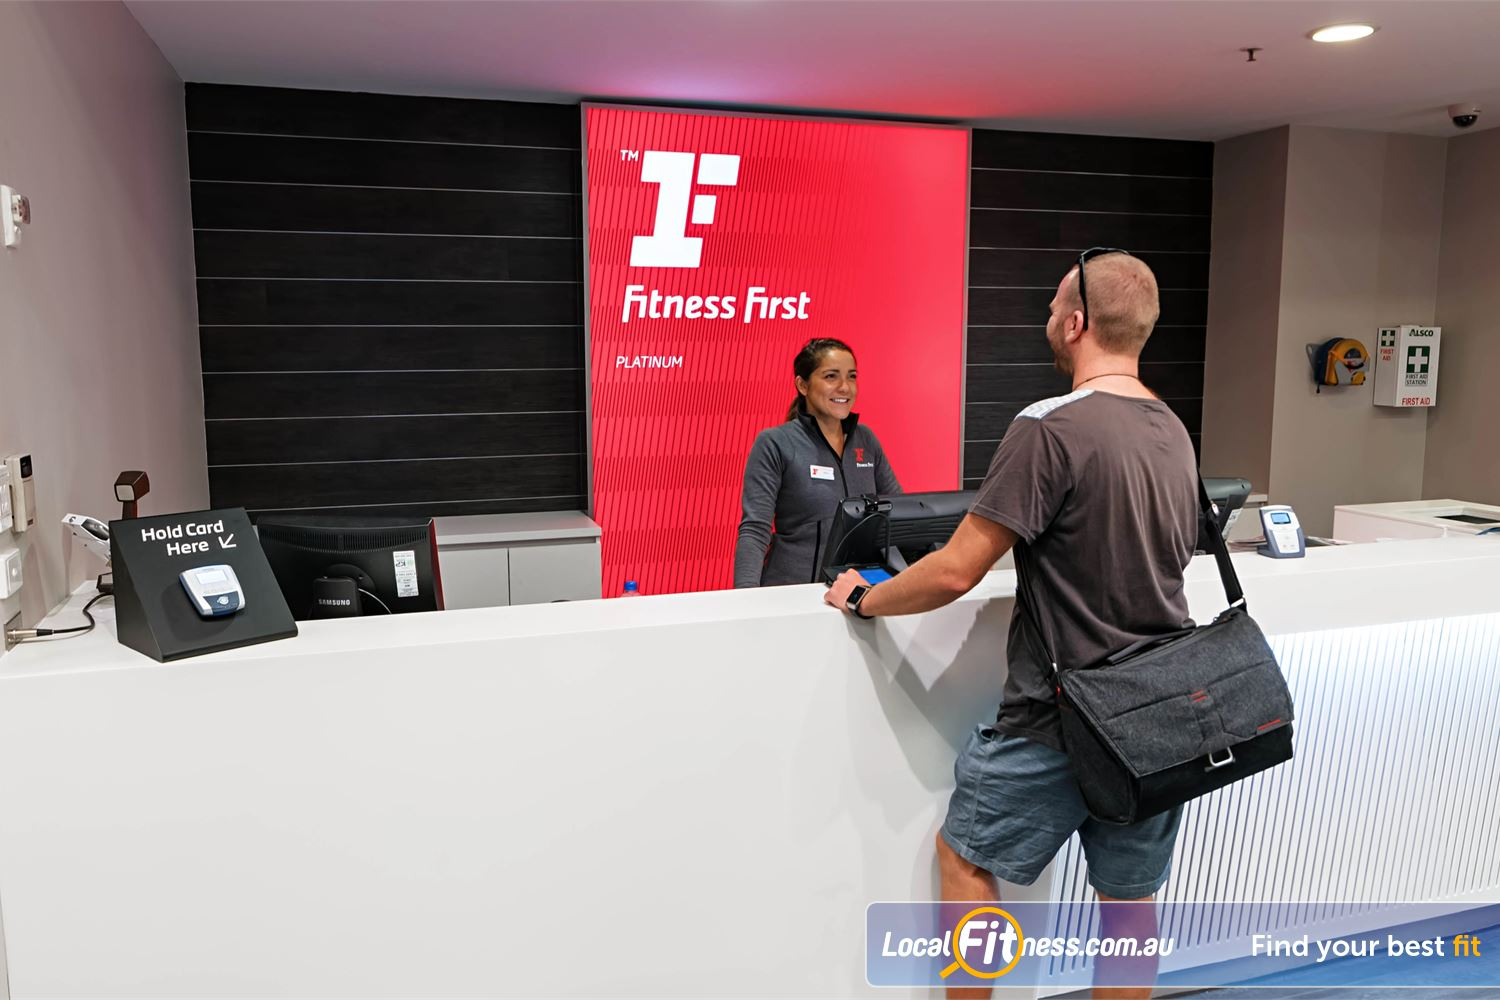 Fitness First Platinum Spring St Near Charing Cross Our team are ready to help you find your fit at Fitness First Bondi Spring St.